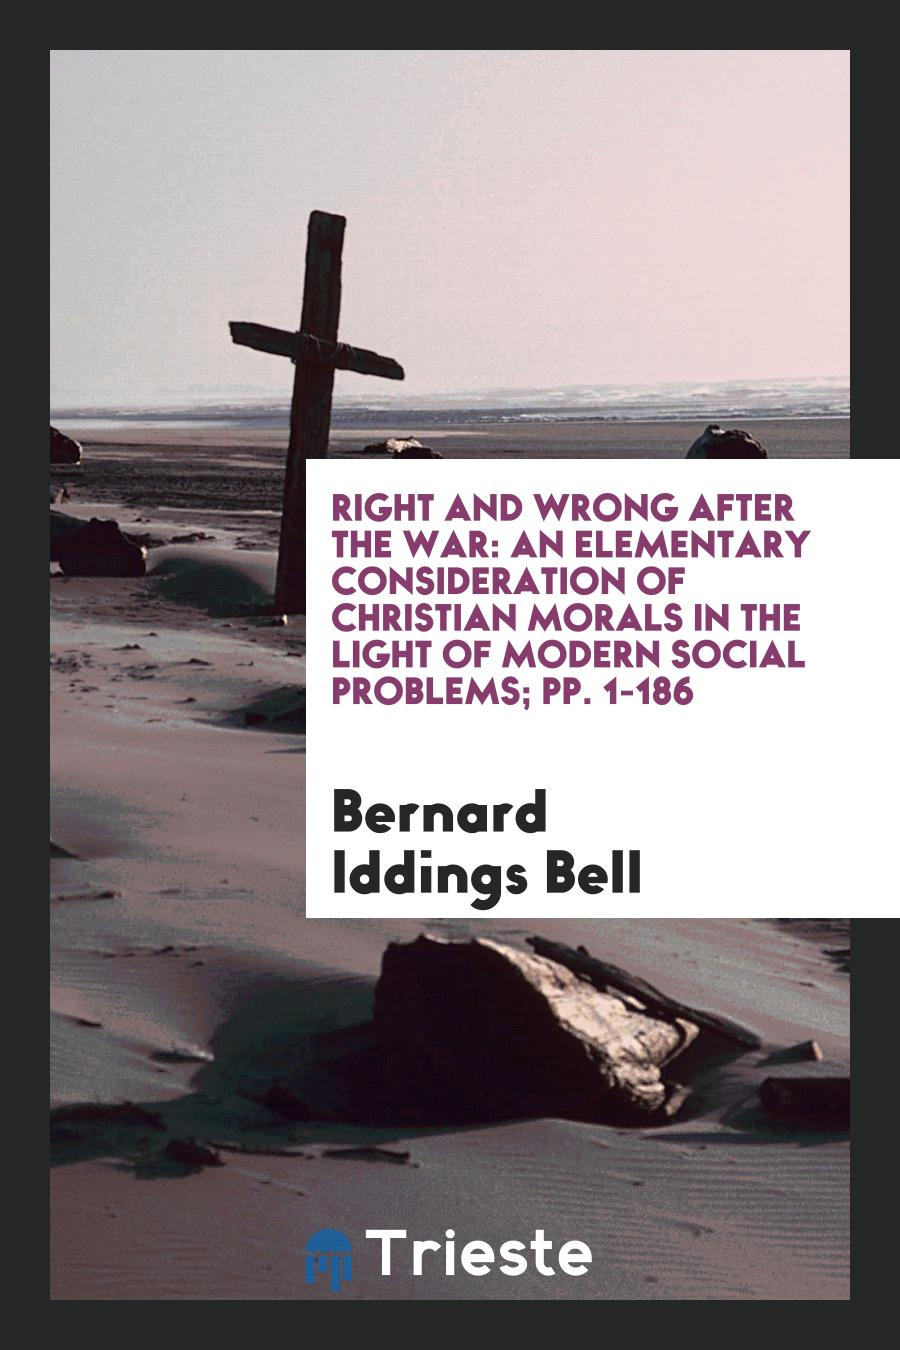 Right and Wrong After the War: An Elementary Consideration of Christian Morals in the Light of Modern Social Problems; pp. 1-186